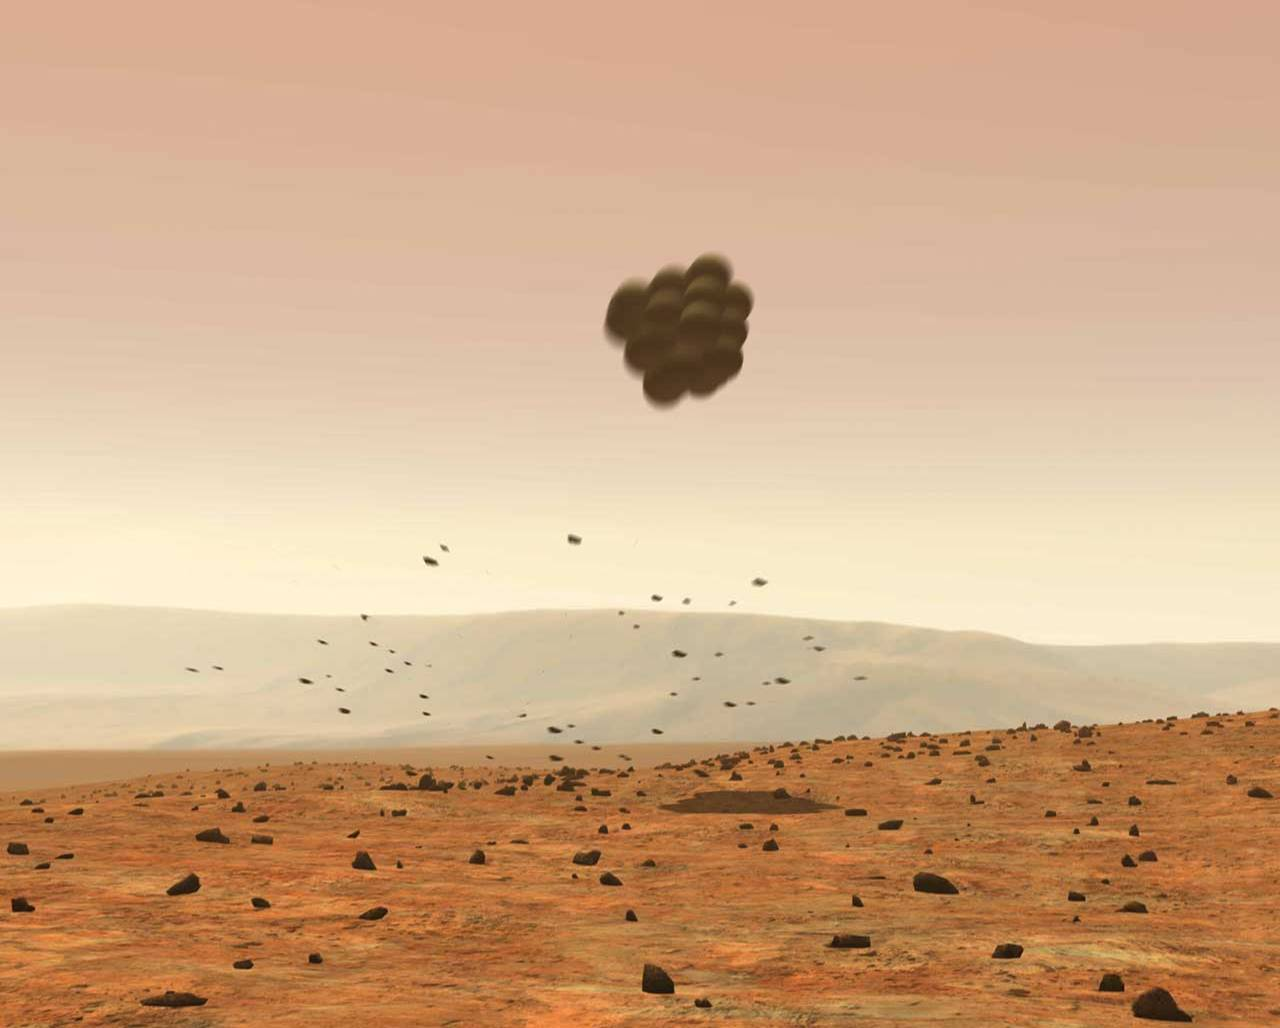 mars exploration rover airbags - photo #8